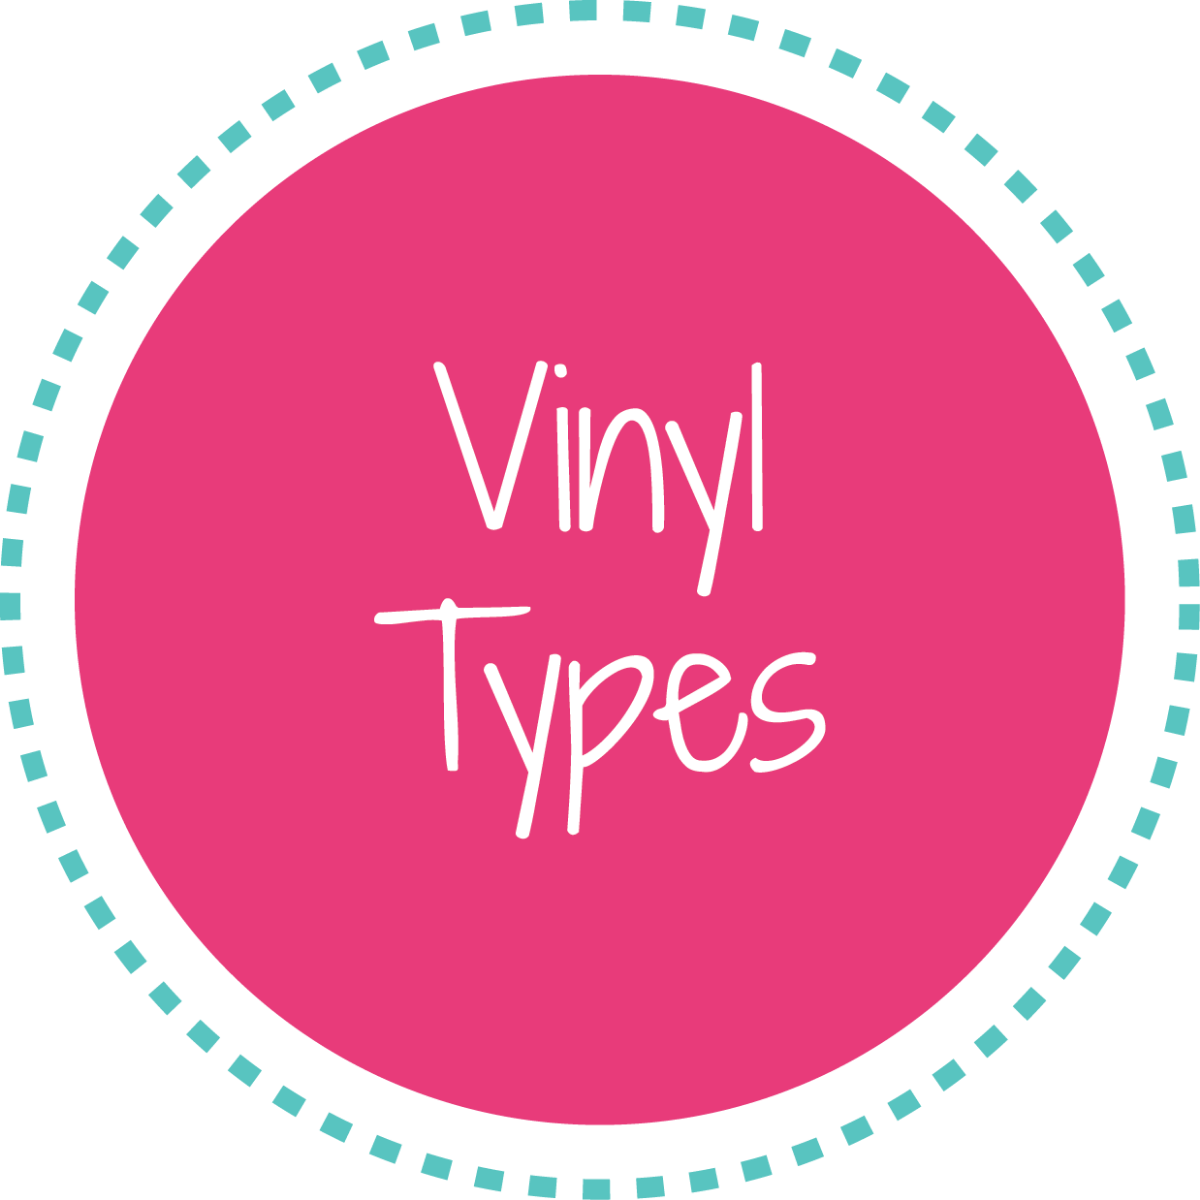 Click here to see vinyl types